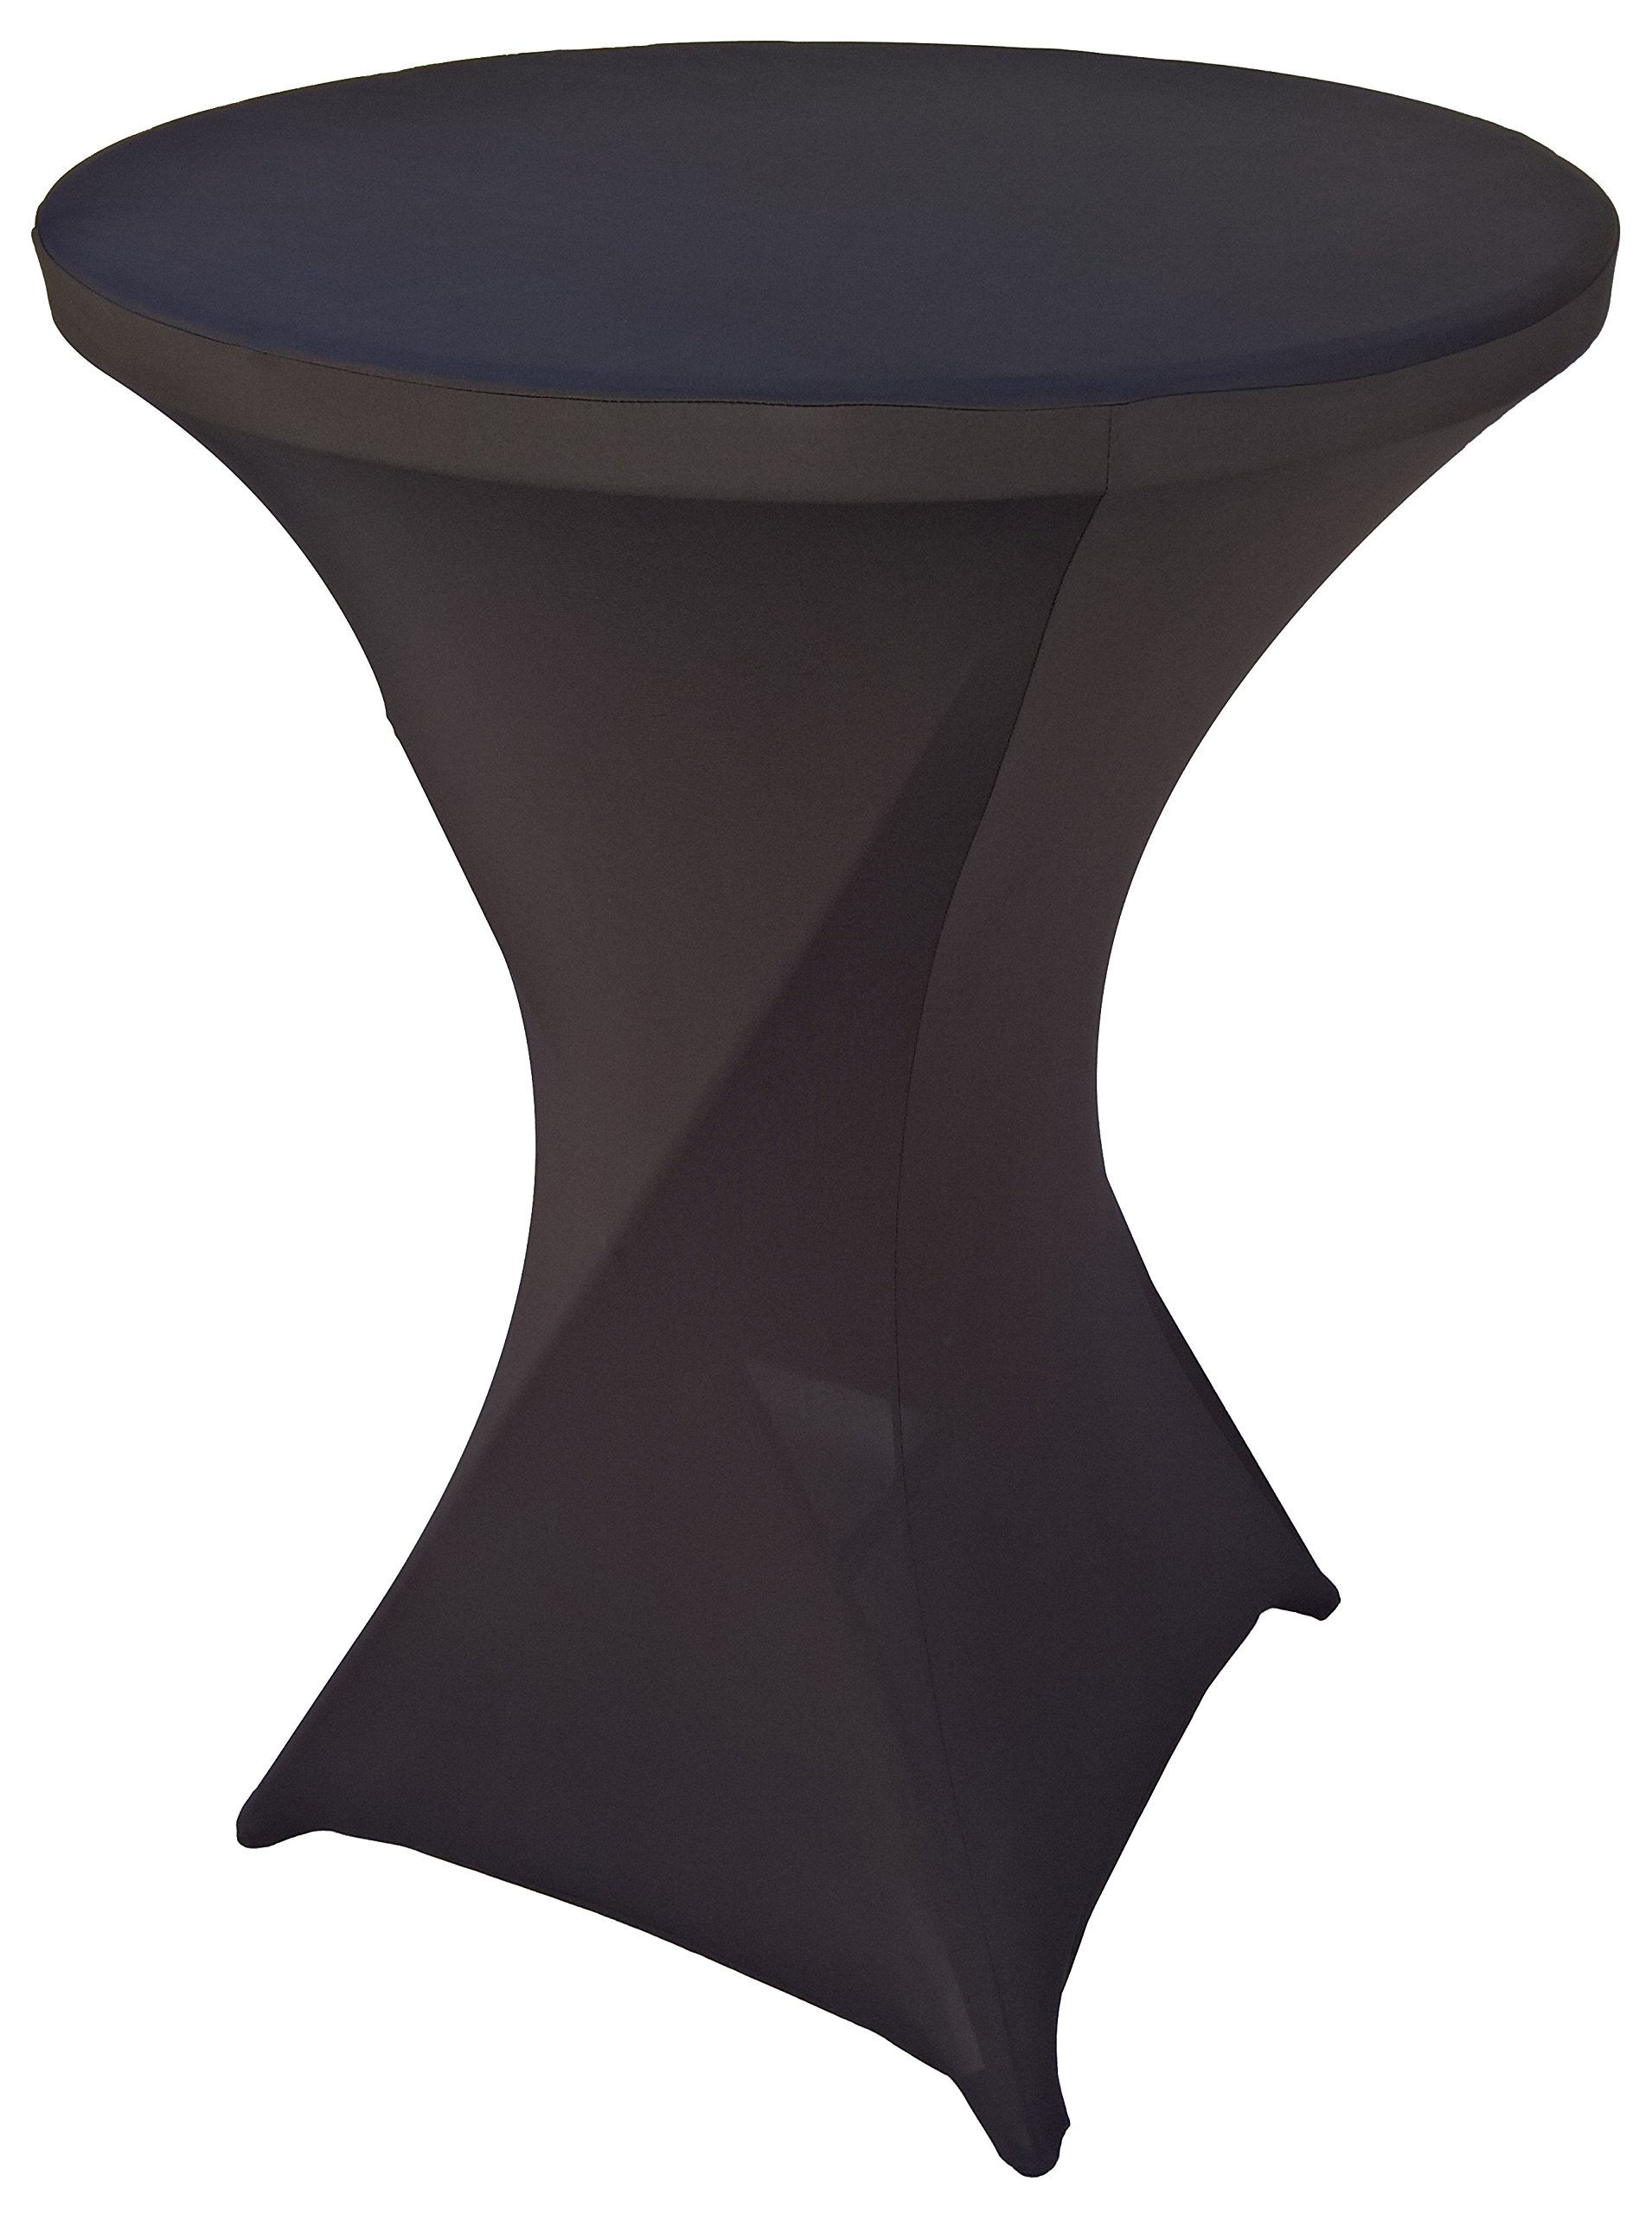 Goldstream Point Black 32 Inch Round x 43 Inch Tall Spandex Cocktail Tablecloth Folding Cover Stretch by Goldstream Point